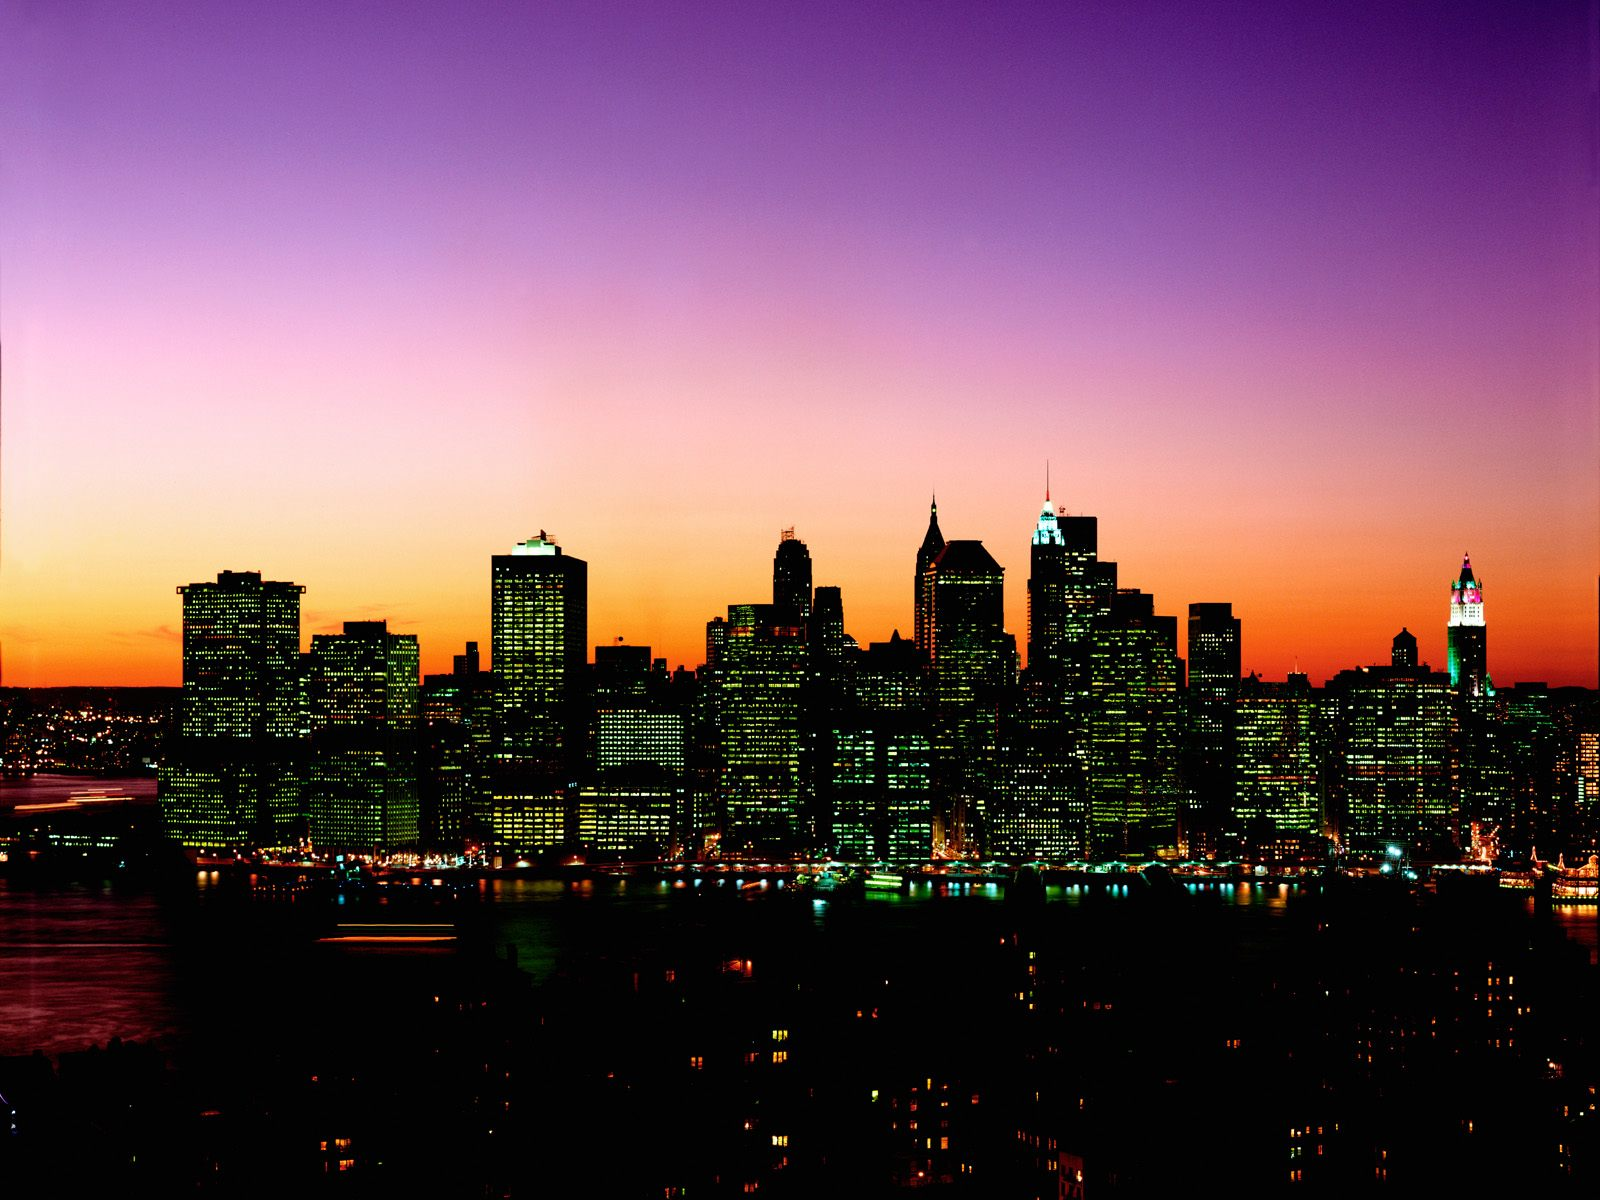 Manhattan skyline hd wallpaper wallpapersafari - Fan wallpaper download ...